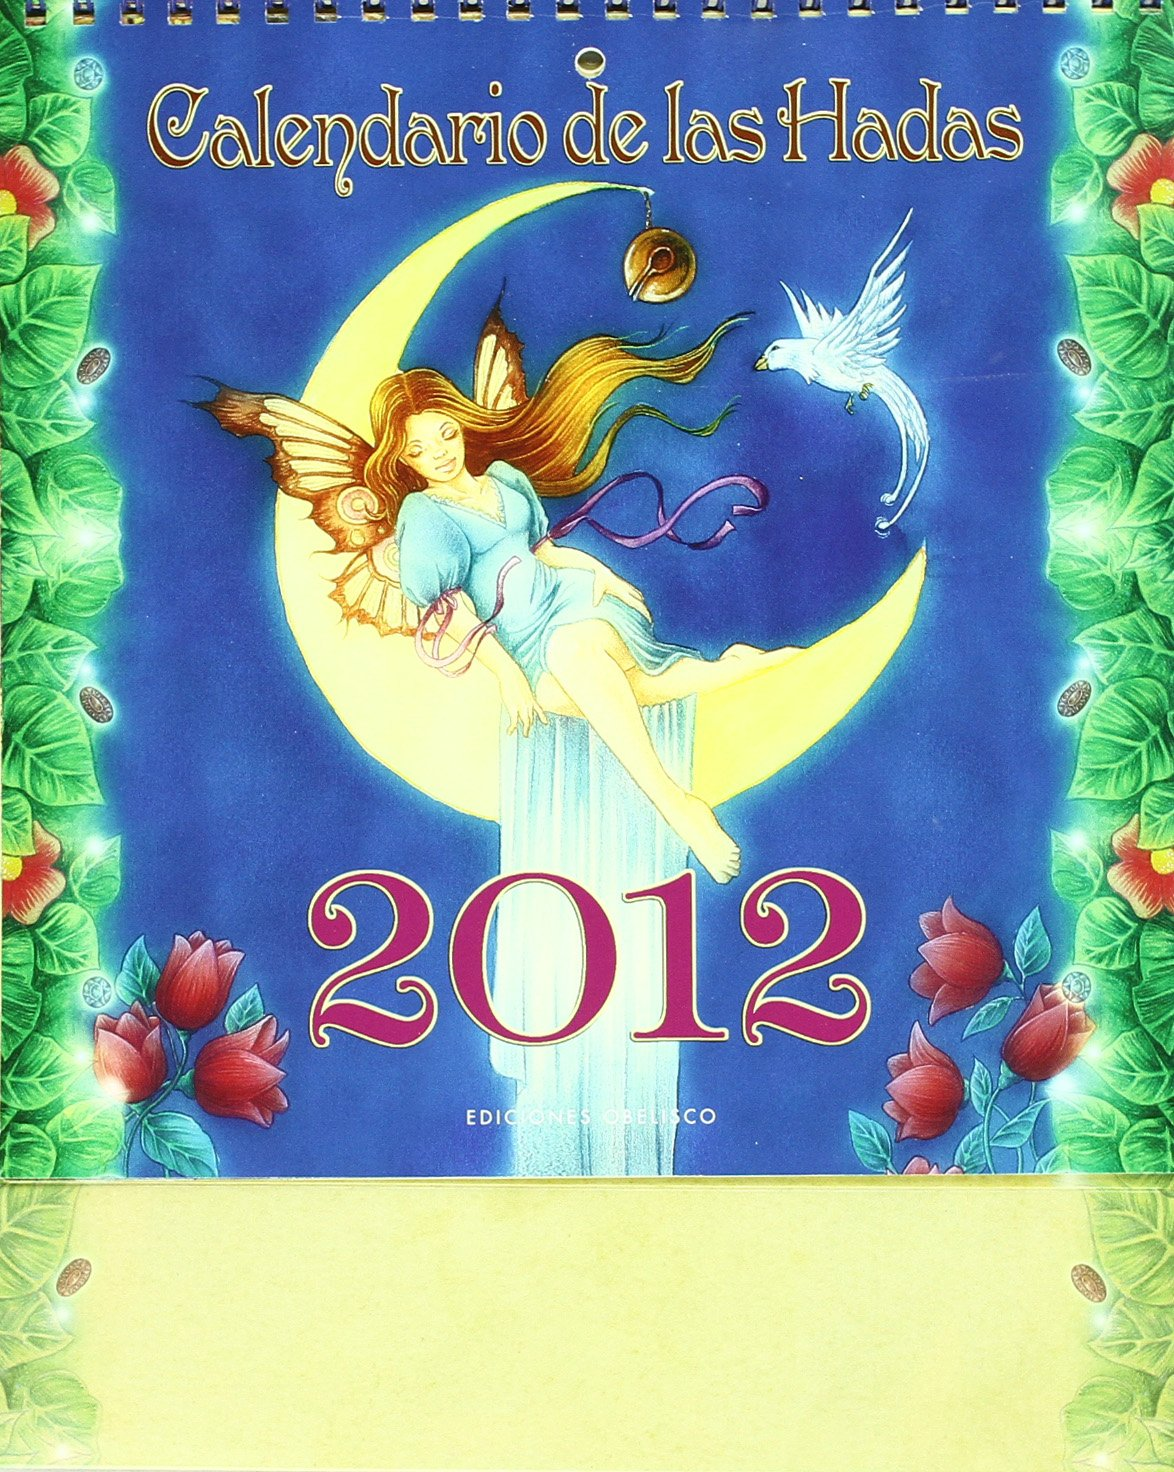 Calendario de las hadas 2012 (Spanish Edition): AA.VV ...